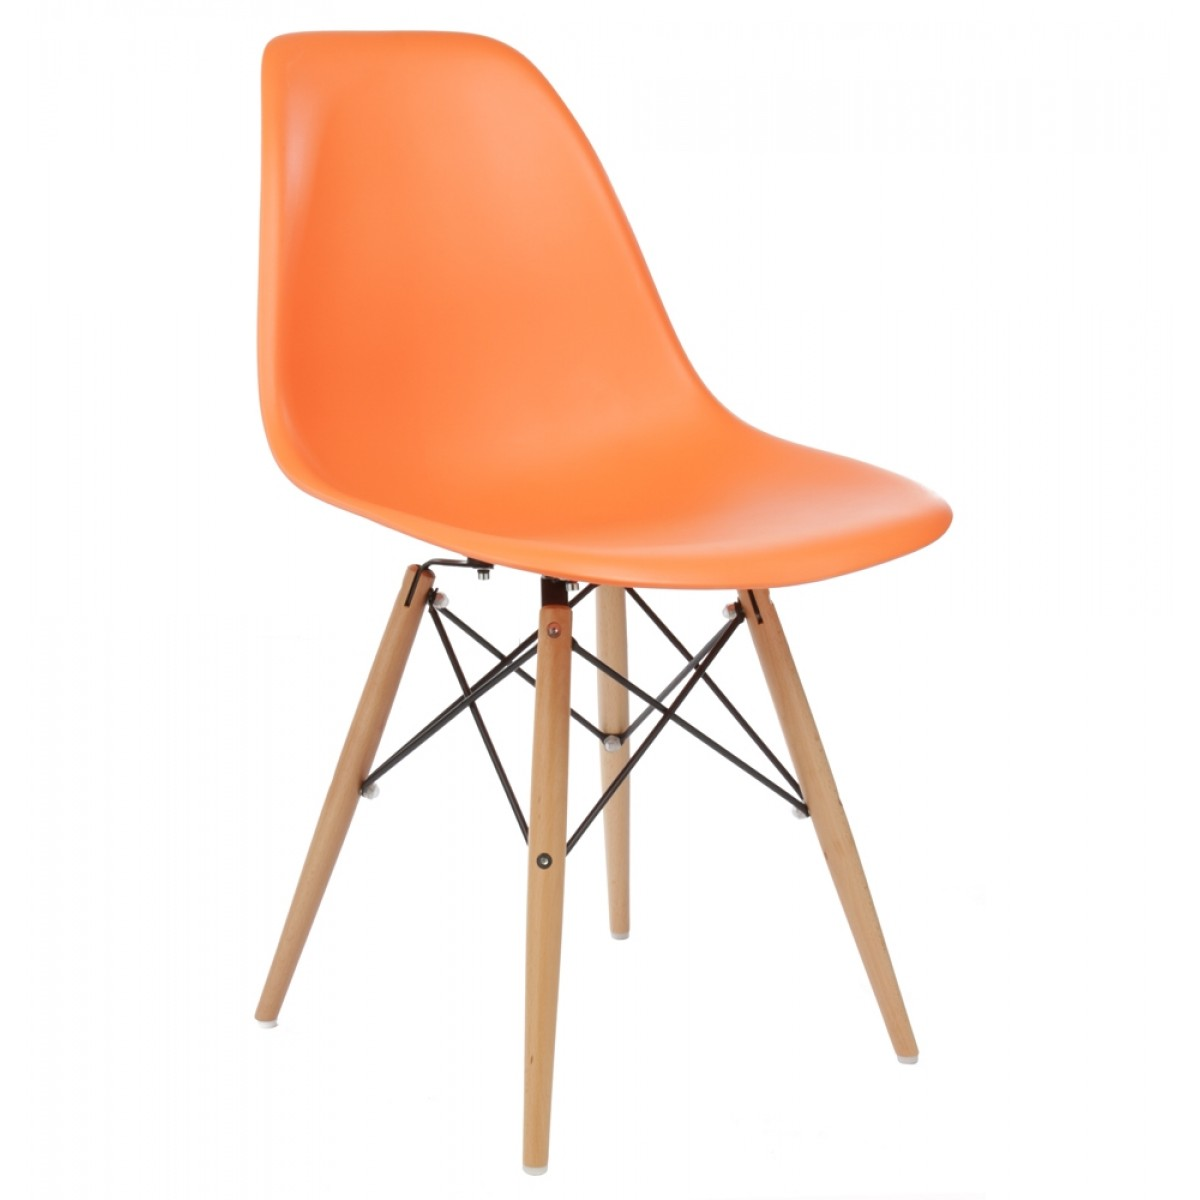 Modern Orange Chair Eames Style Dsw Molded Orange Plastic Dining Shell Chair